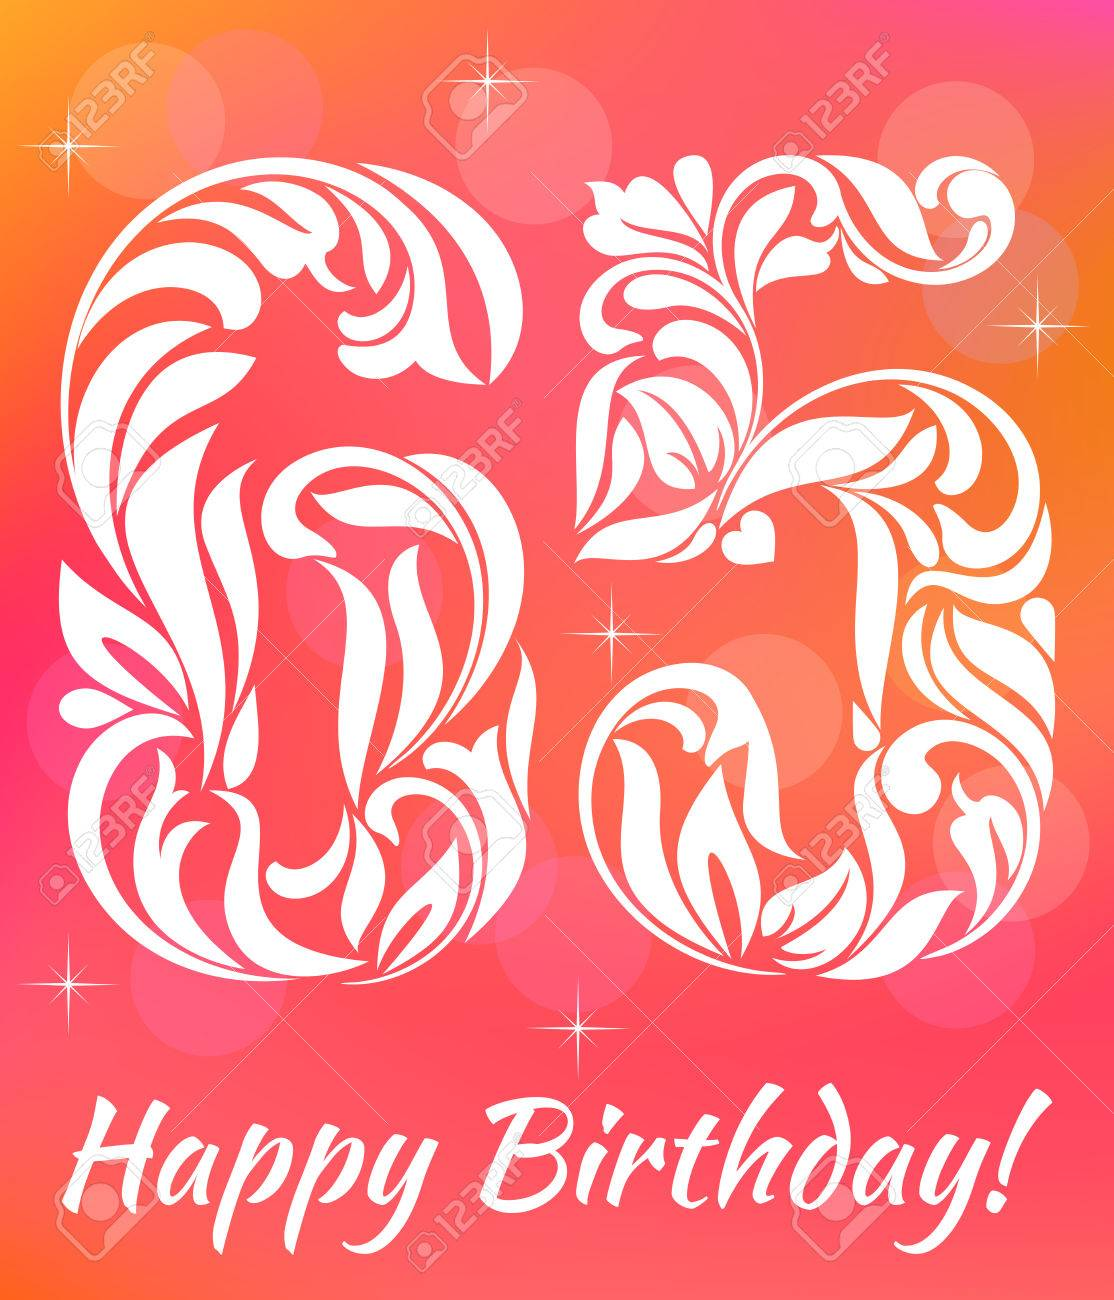 Bright Greeting Card Template Celebrating 65 Years Birthday Decorative Font With Swirls And Floral